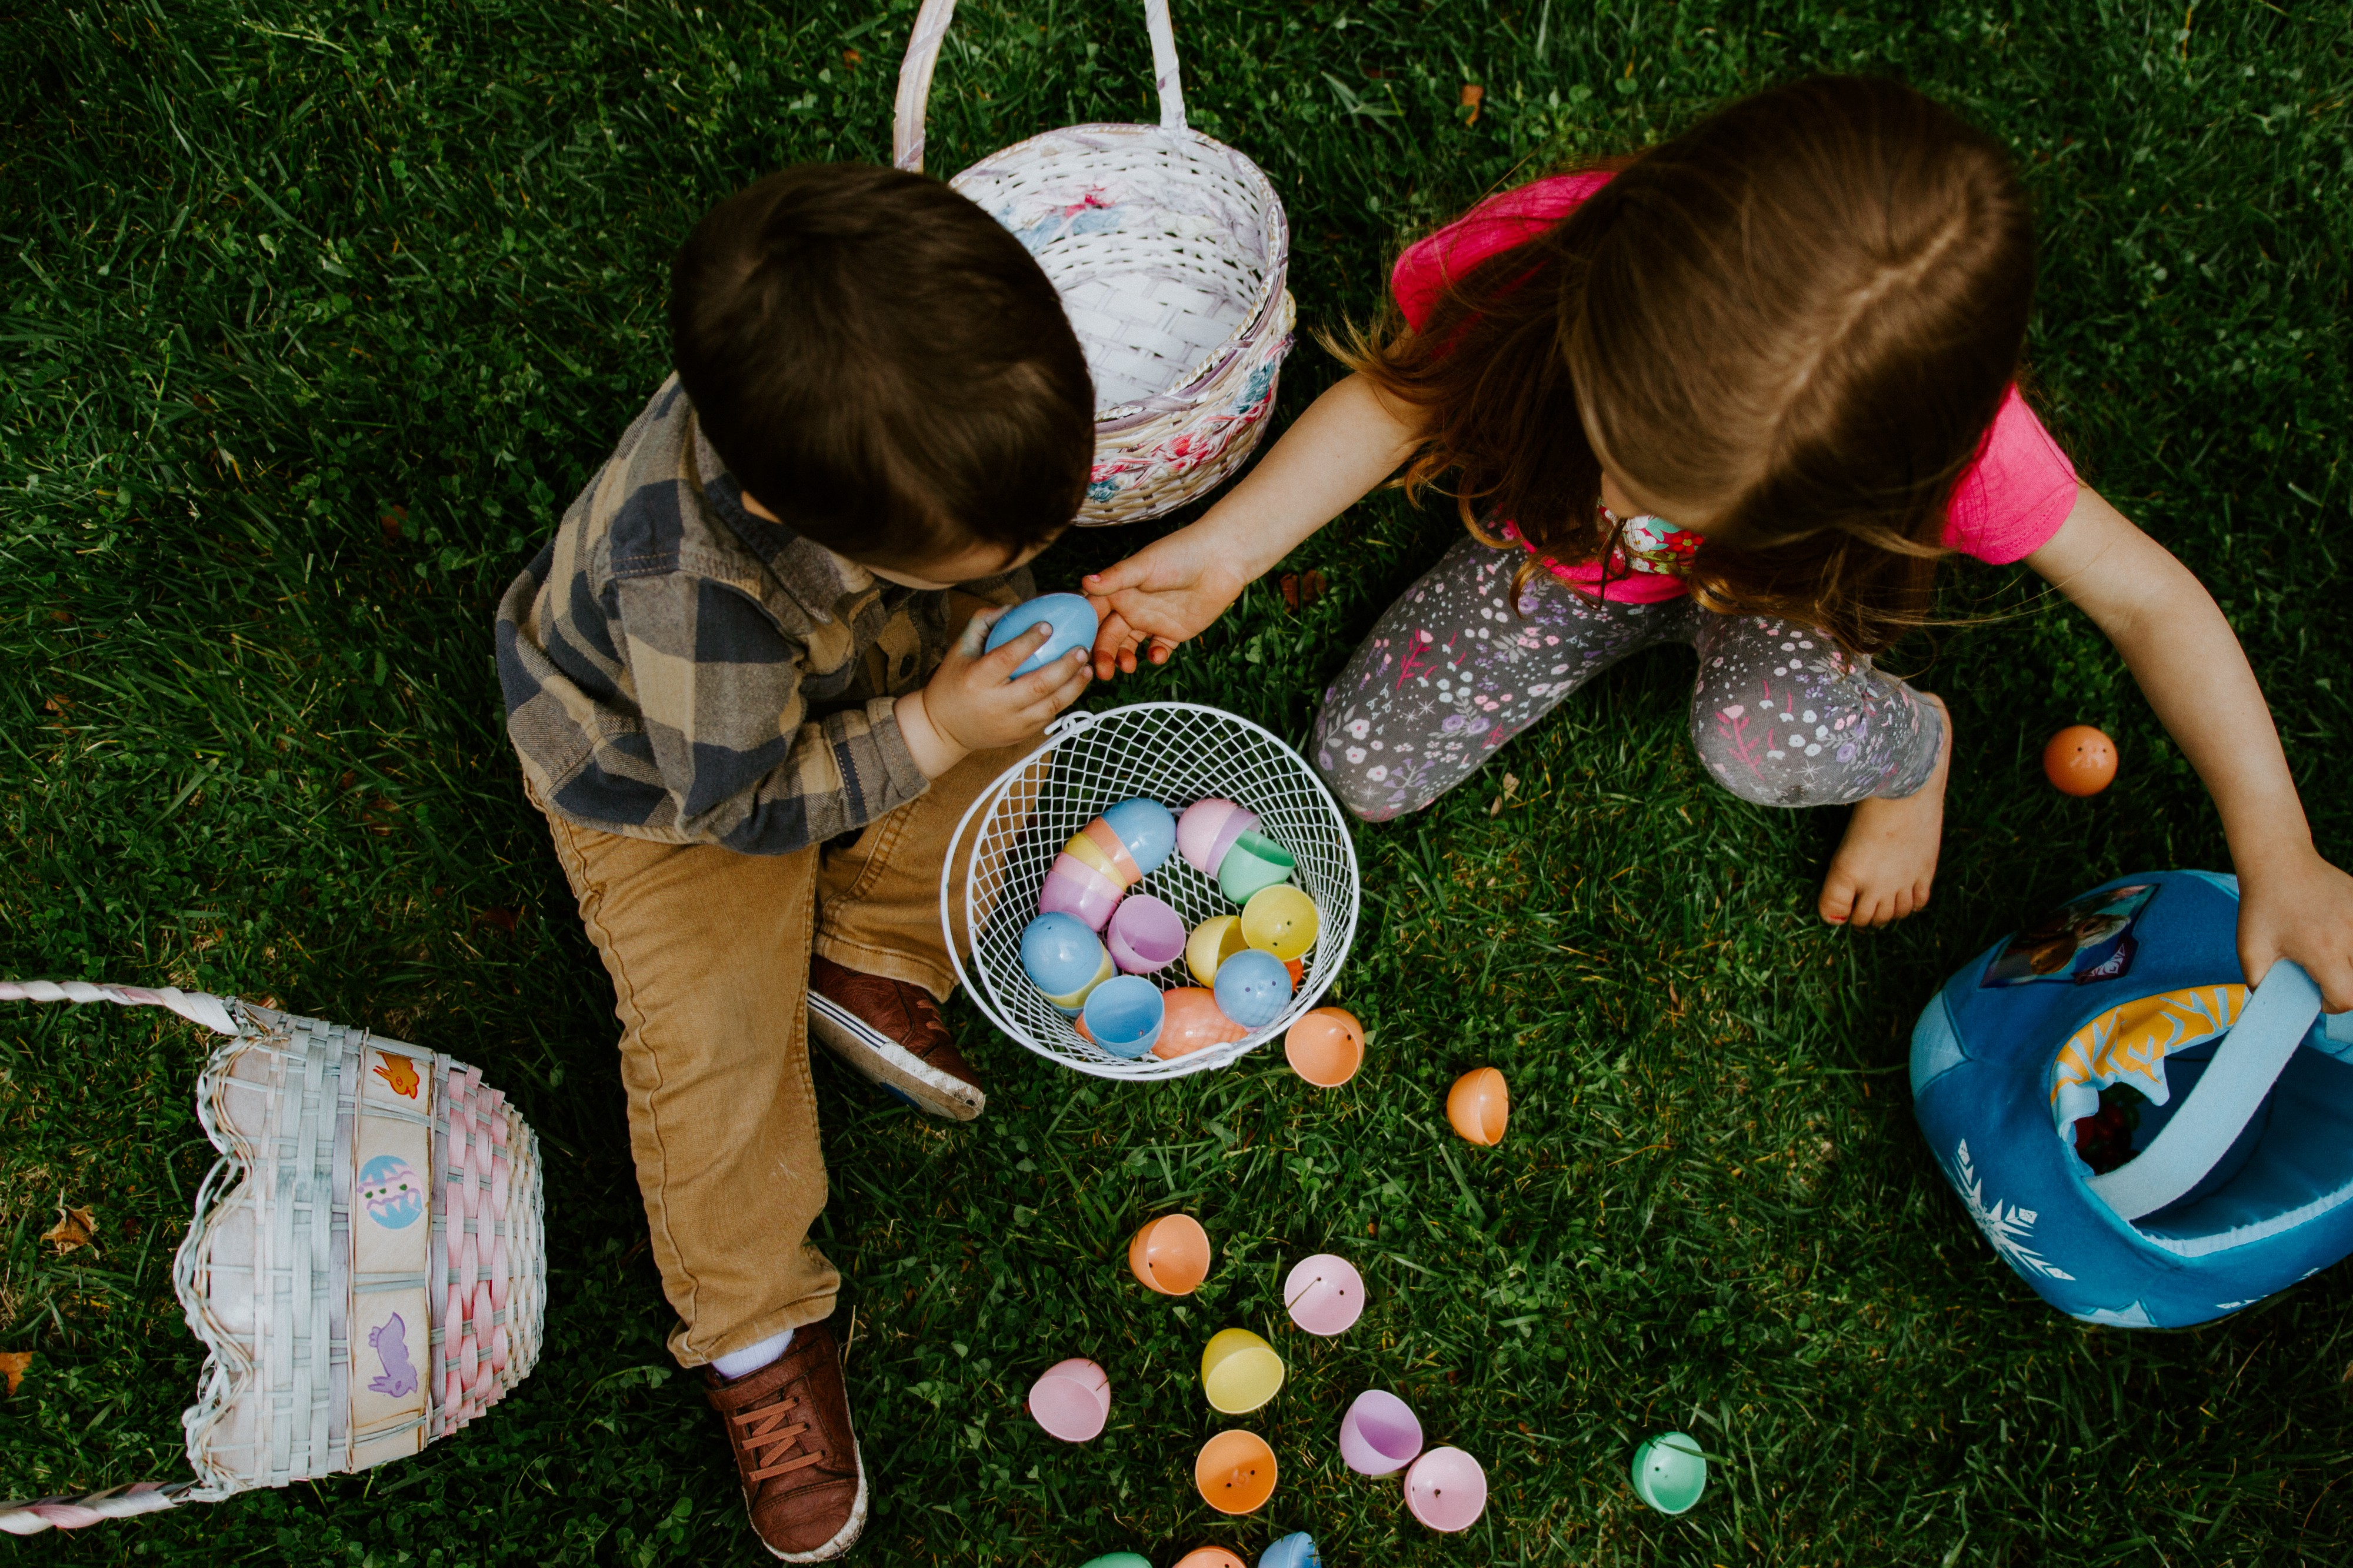 Kids with Easter baskets sharing Easter Eggs